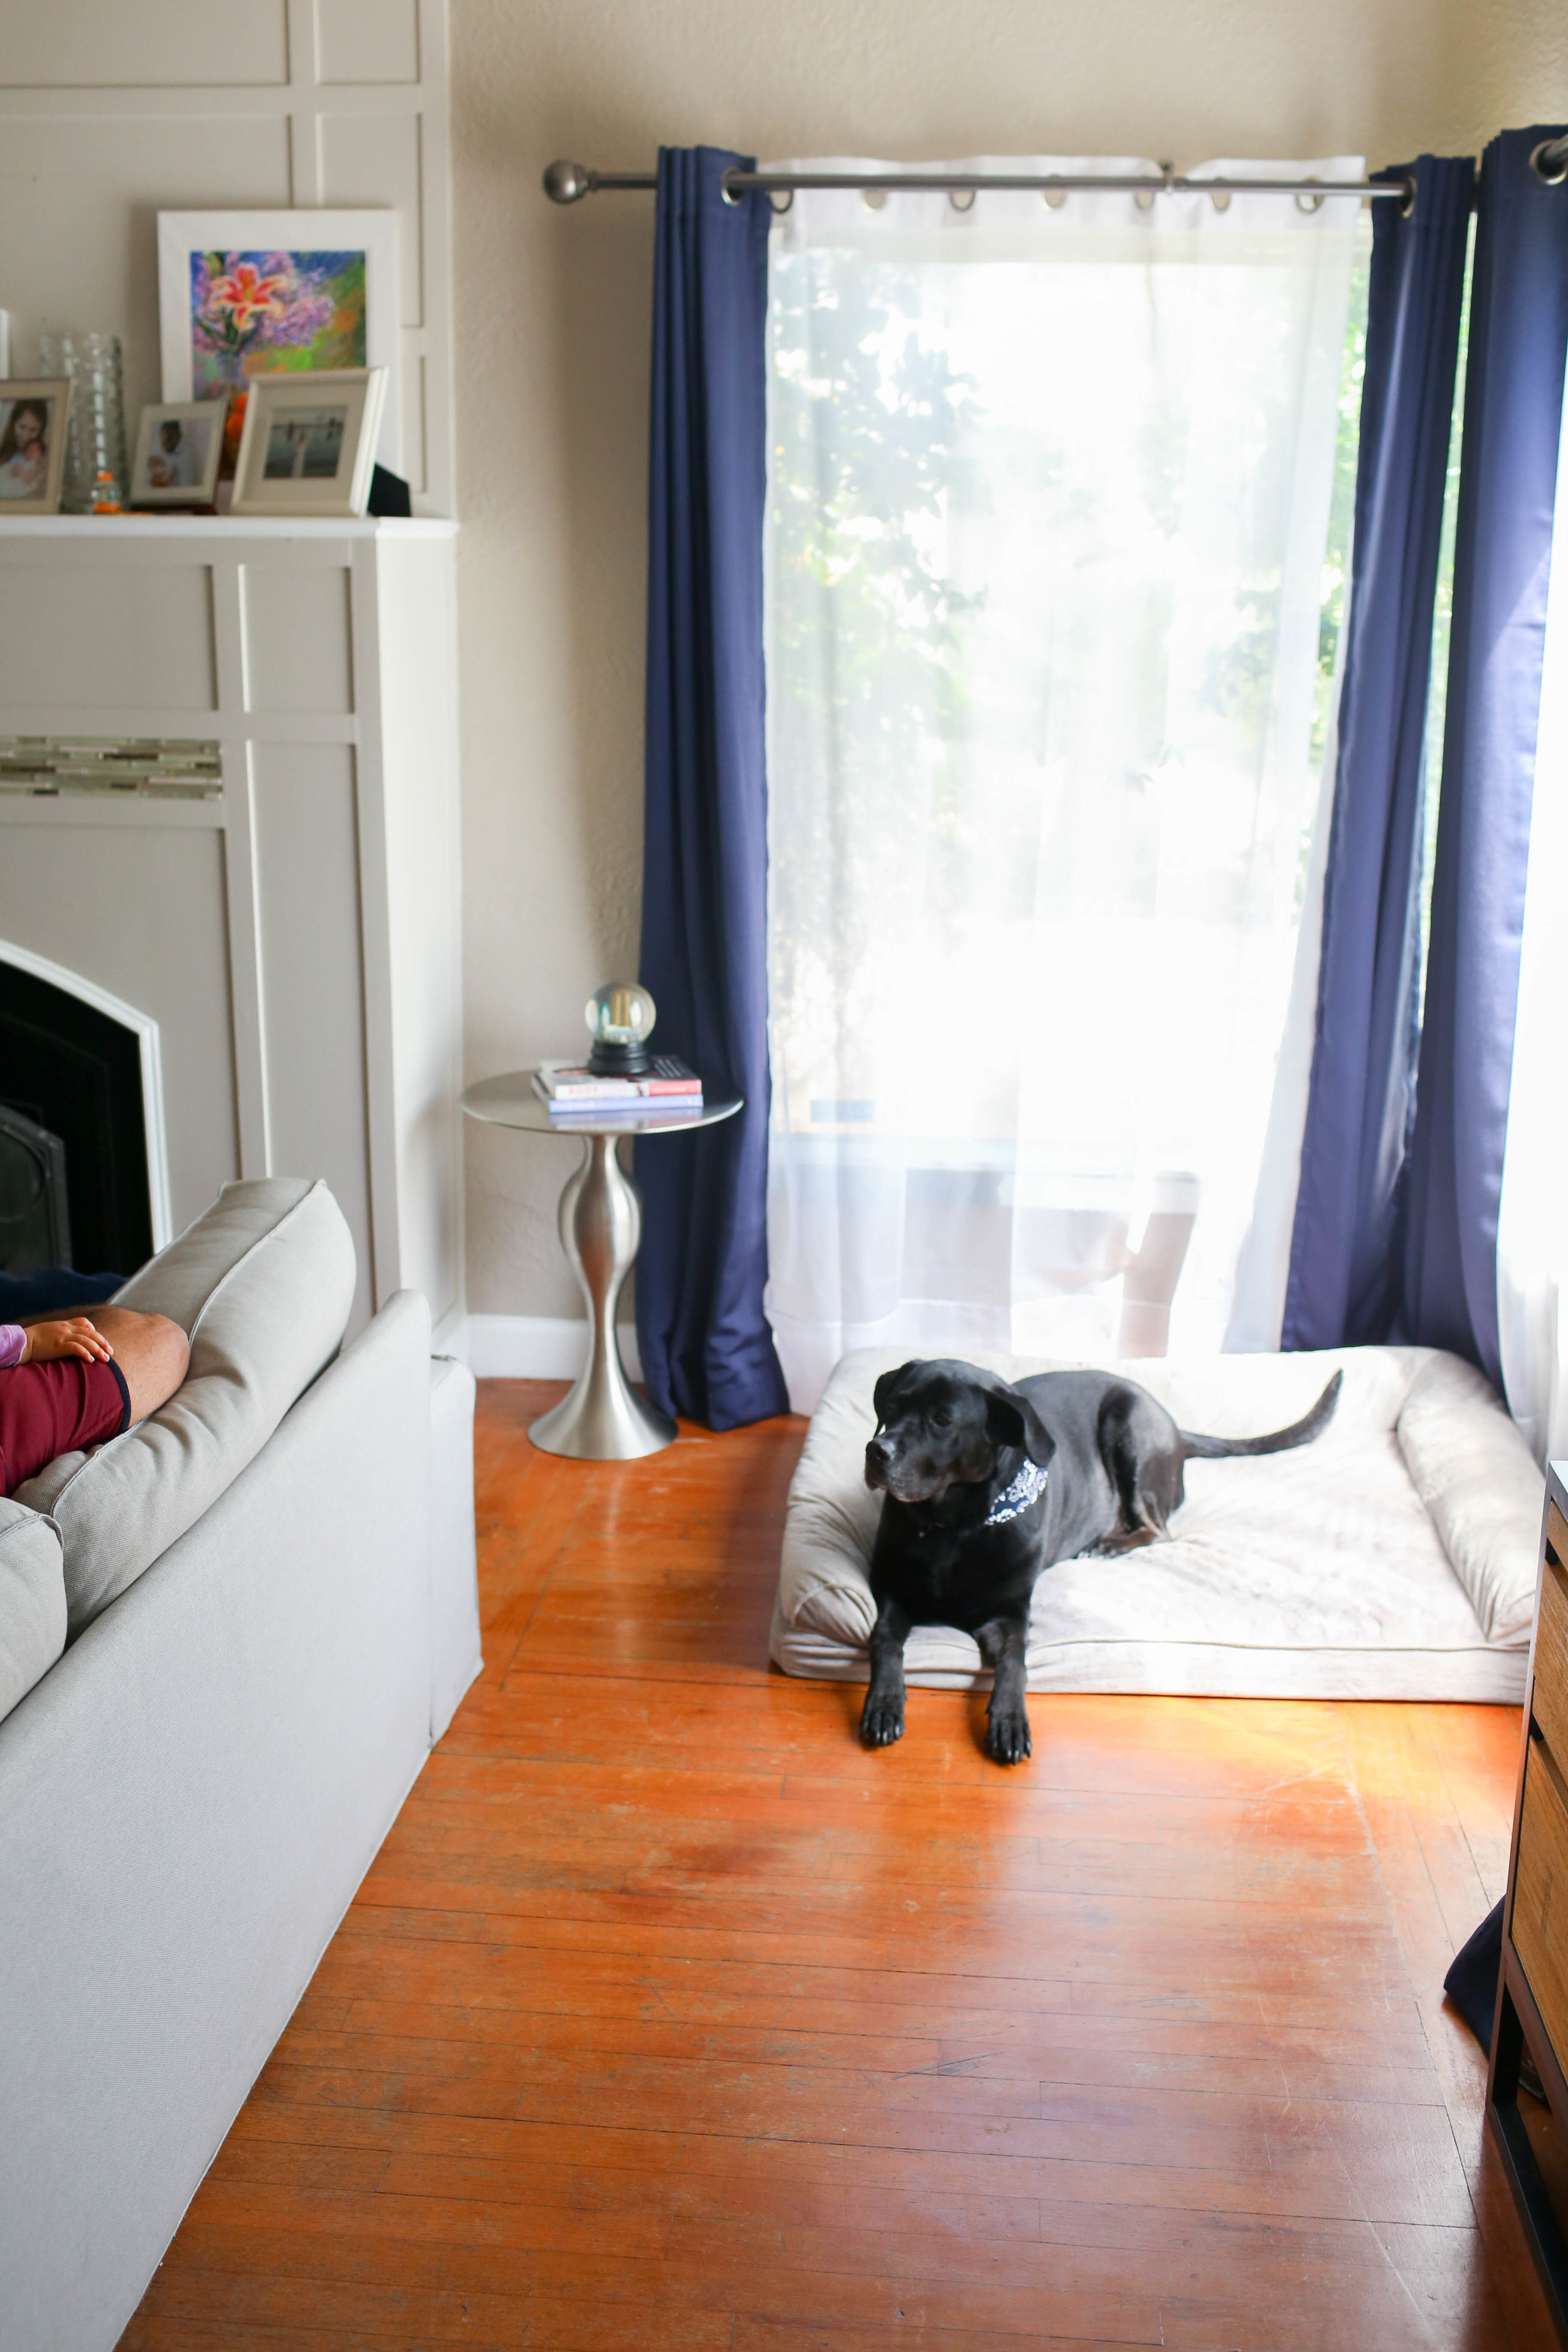 Gennifer Rose_10 Simple Ways to Prepare Your Home for a New Dog_7.jpg